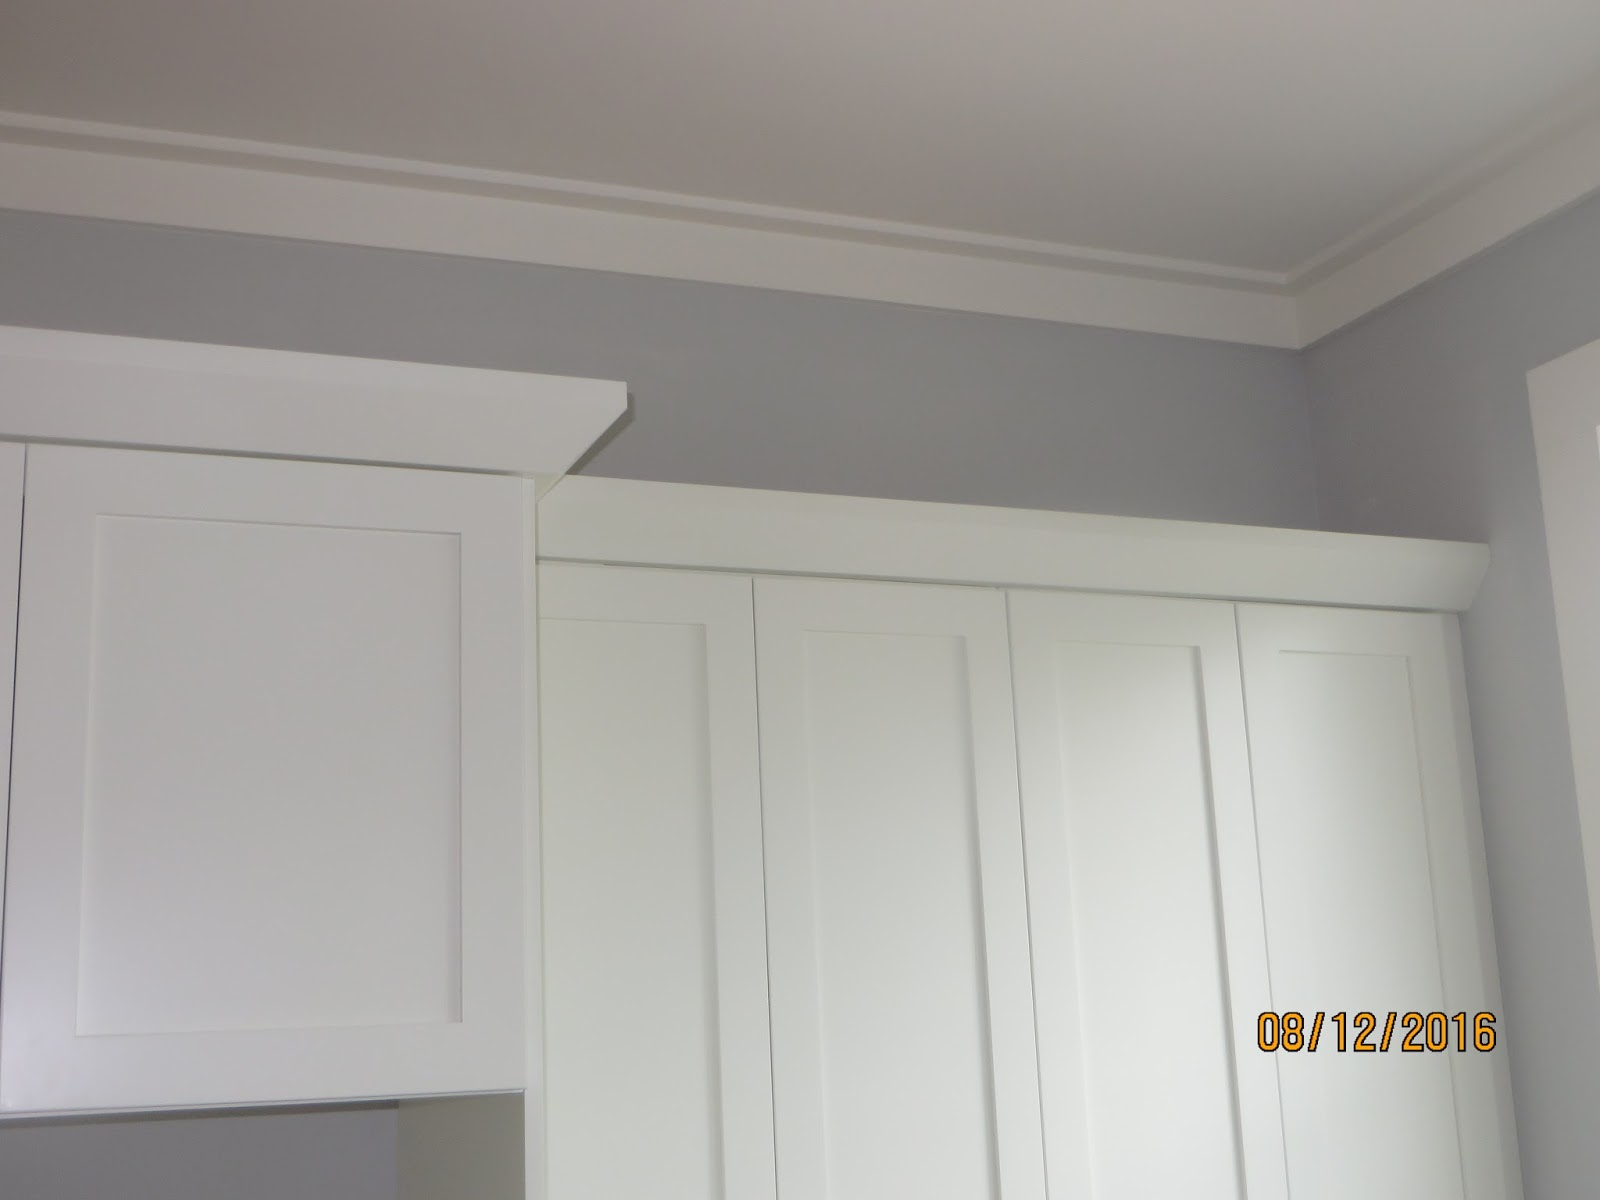 Shaker style crown molding - The Cabinet Crown Molding Is Simple But Works Well With The Shaker Style Doors